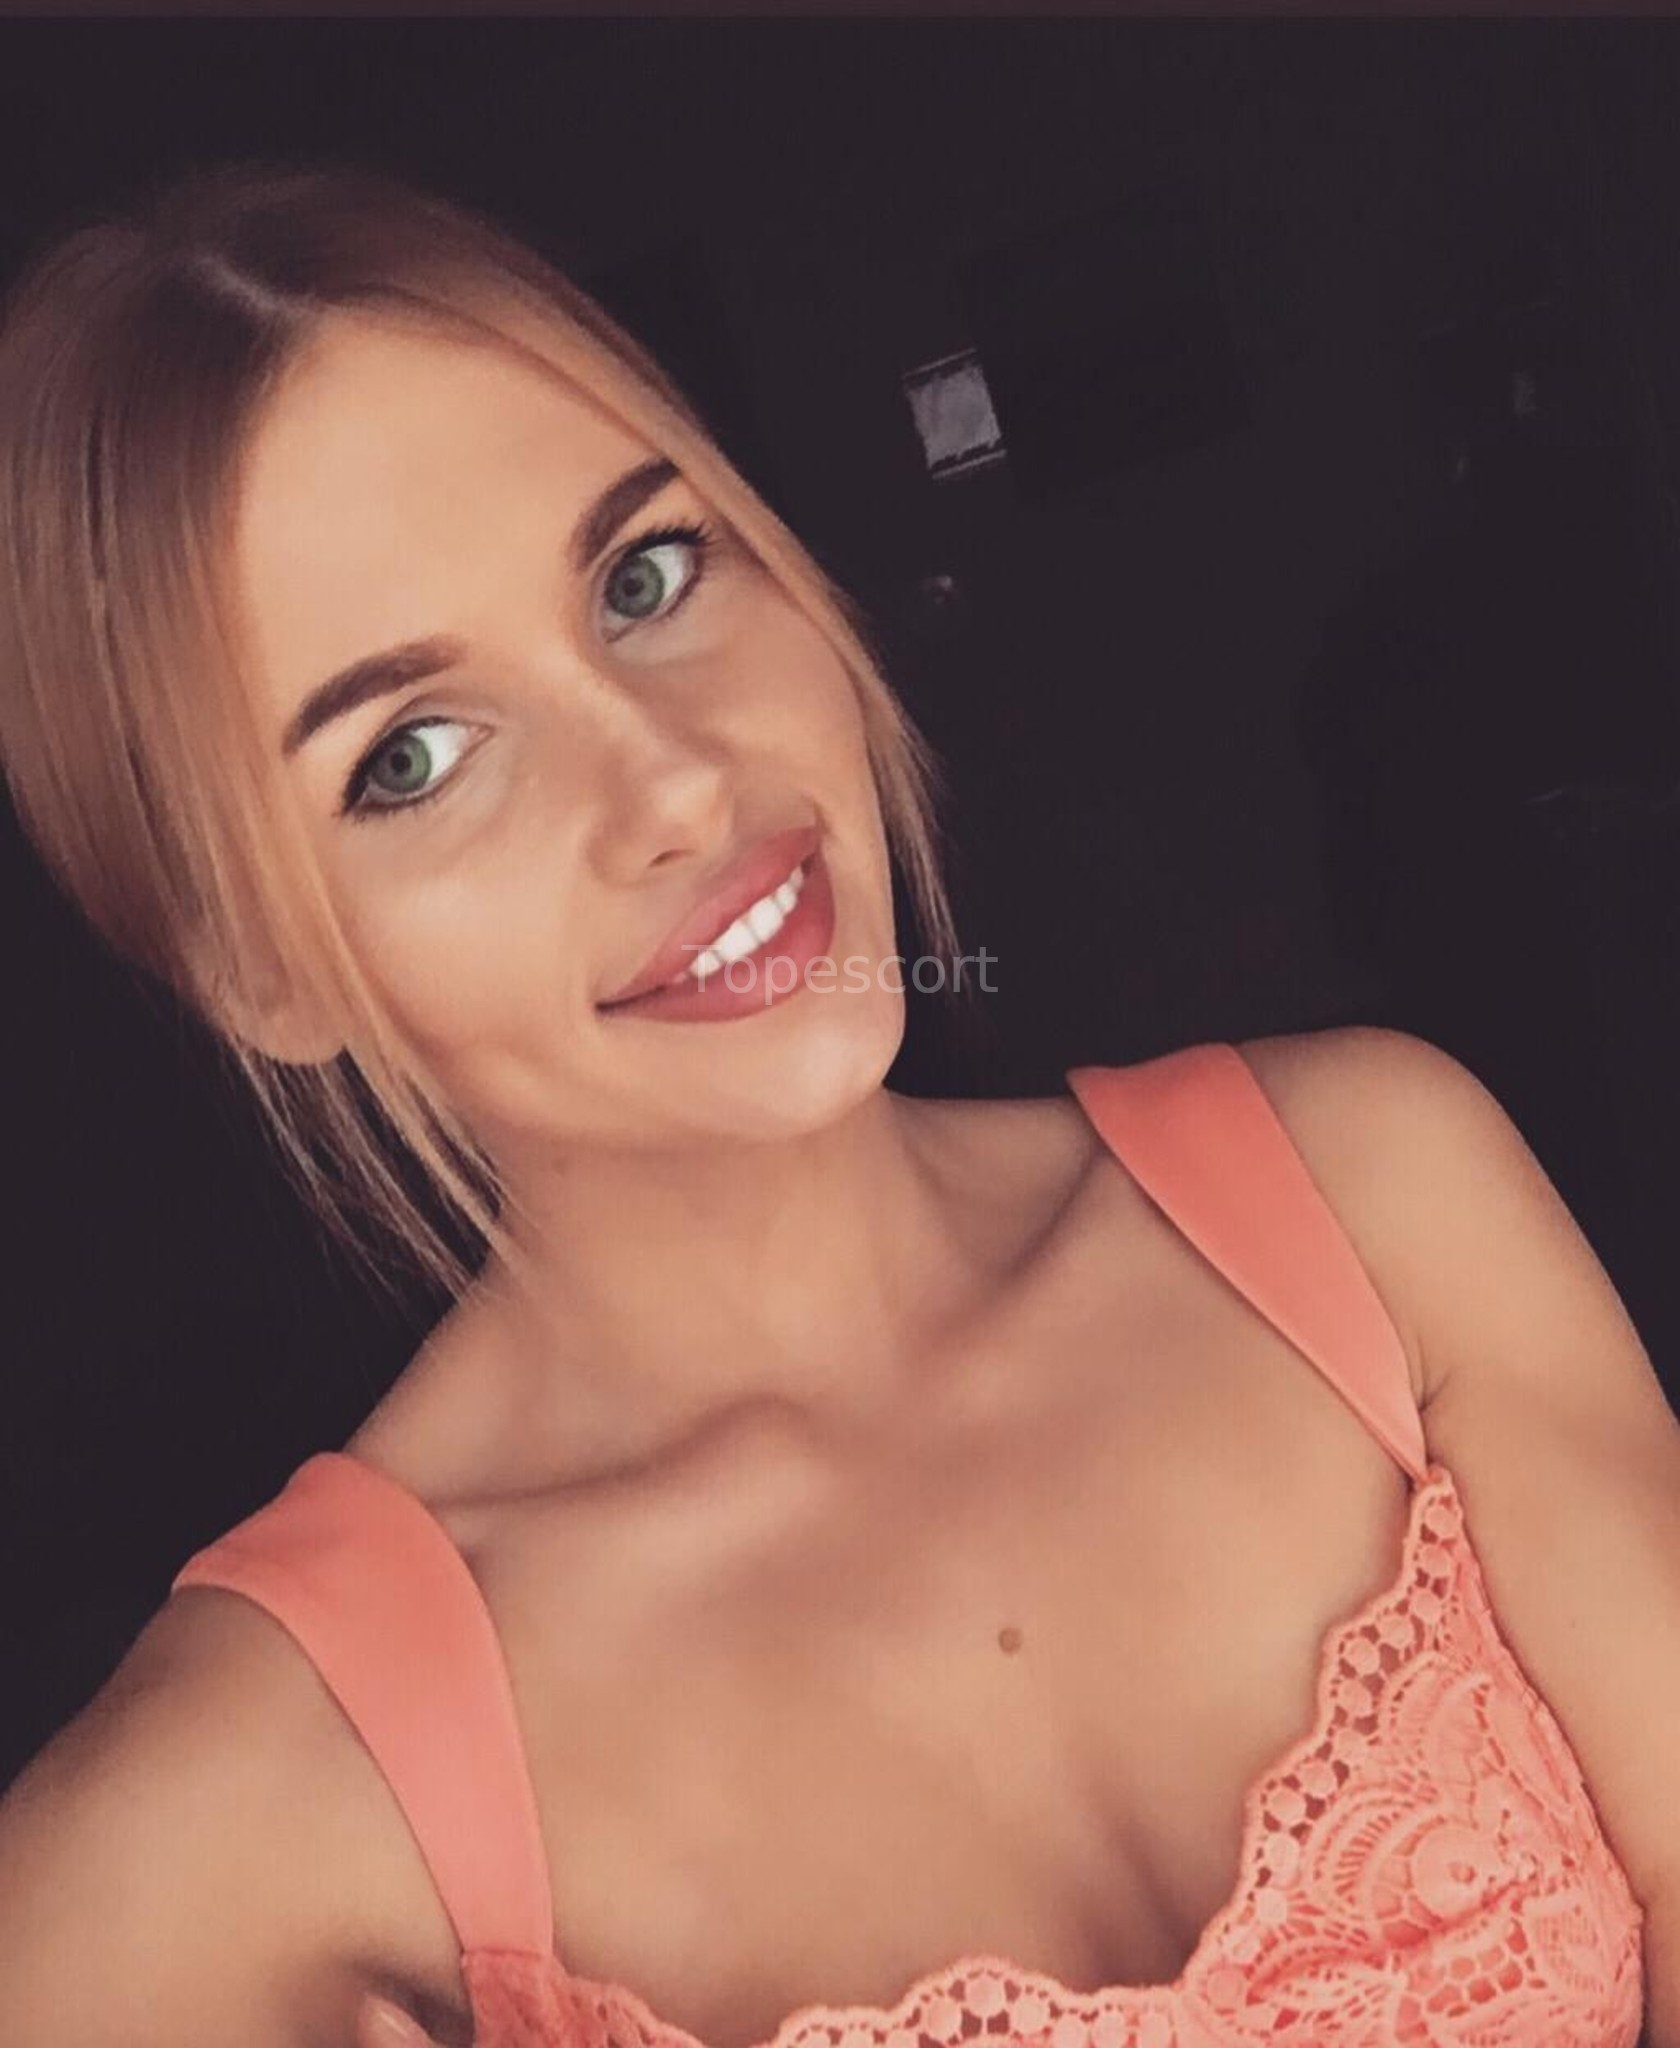 24 Porn Russian Page julia (24) fetish teen escort babe page (moscow) | top escort